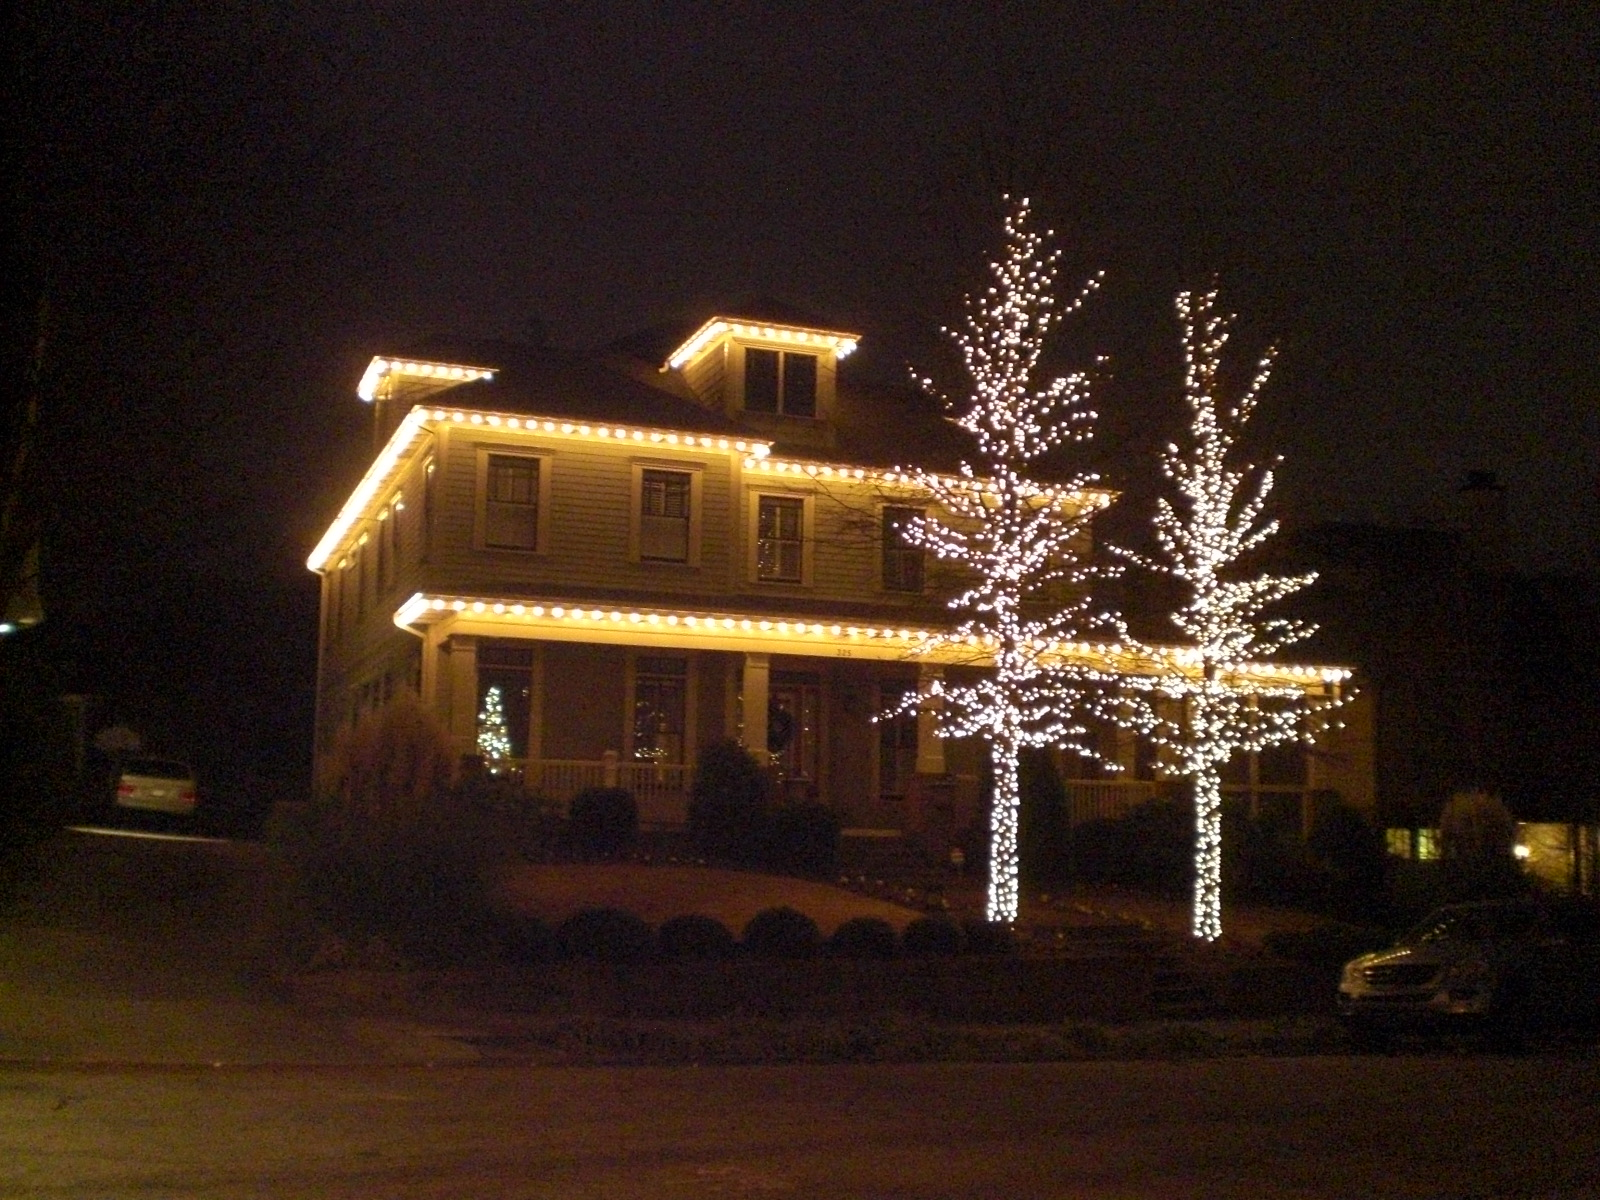 Viva cindy the christmas light pros of atlanta at your - Christmas lights house ideas ...